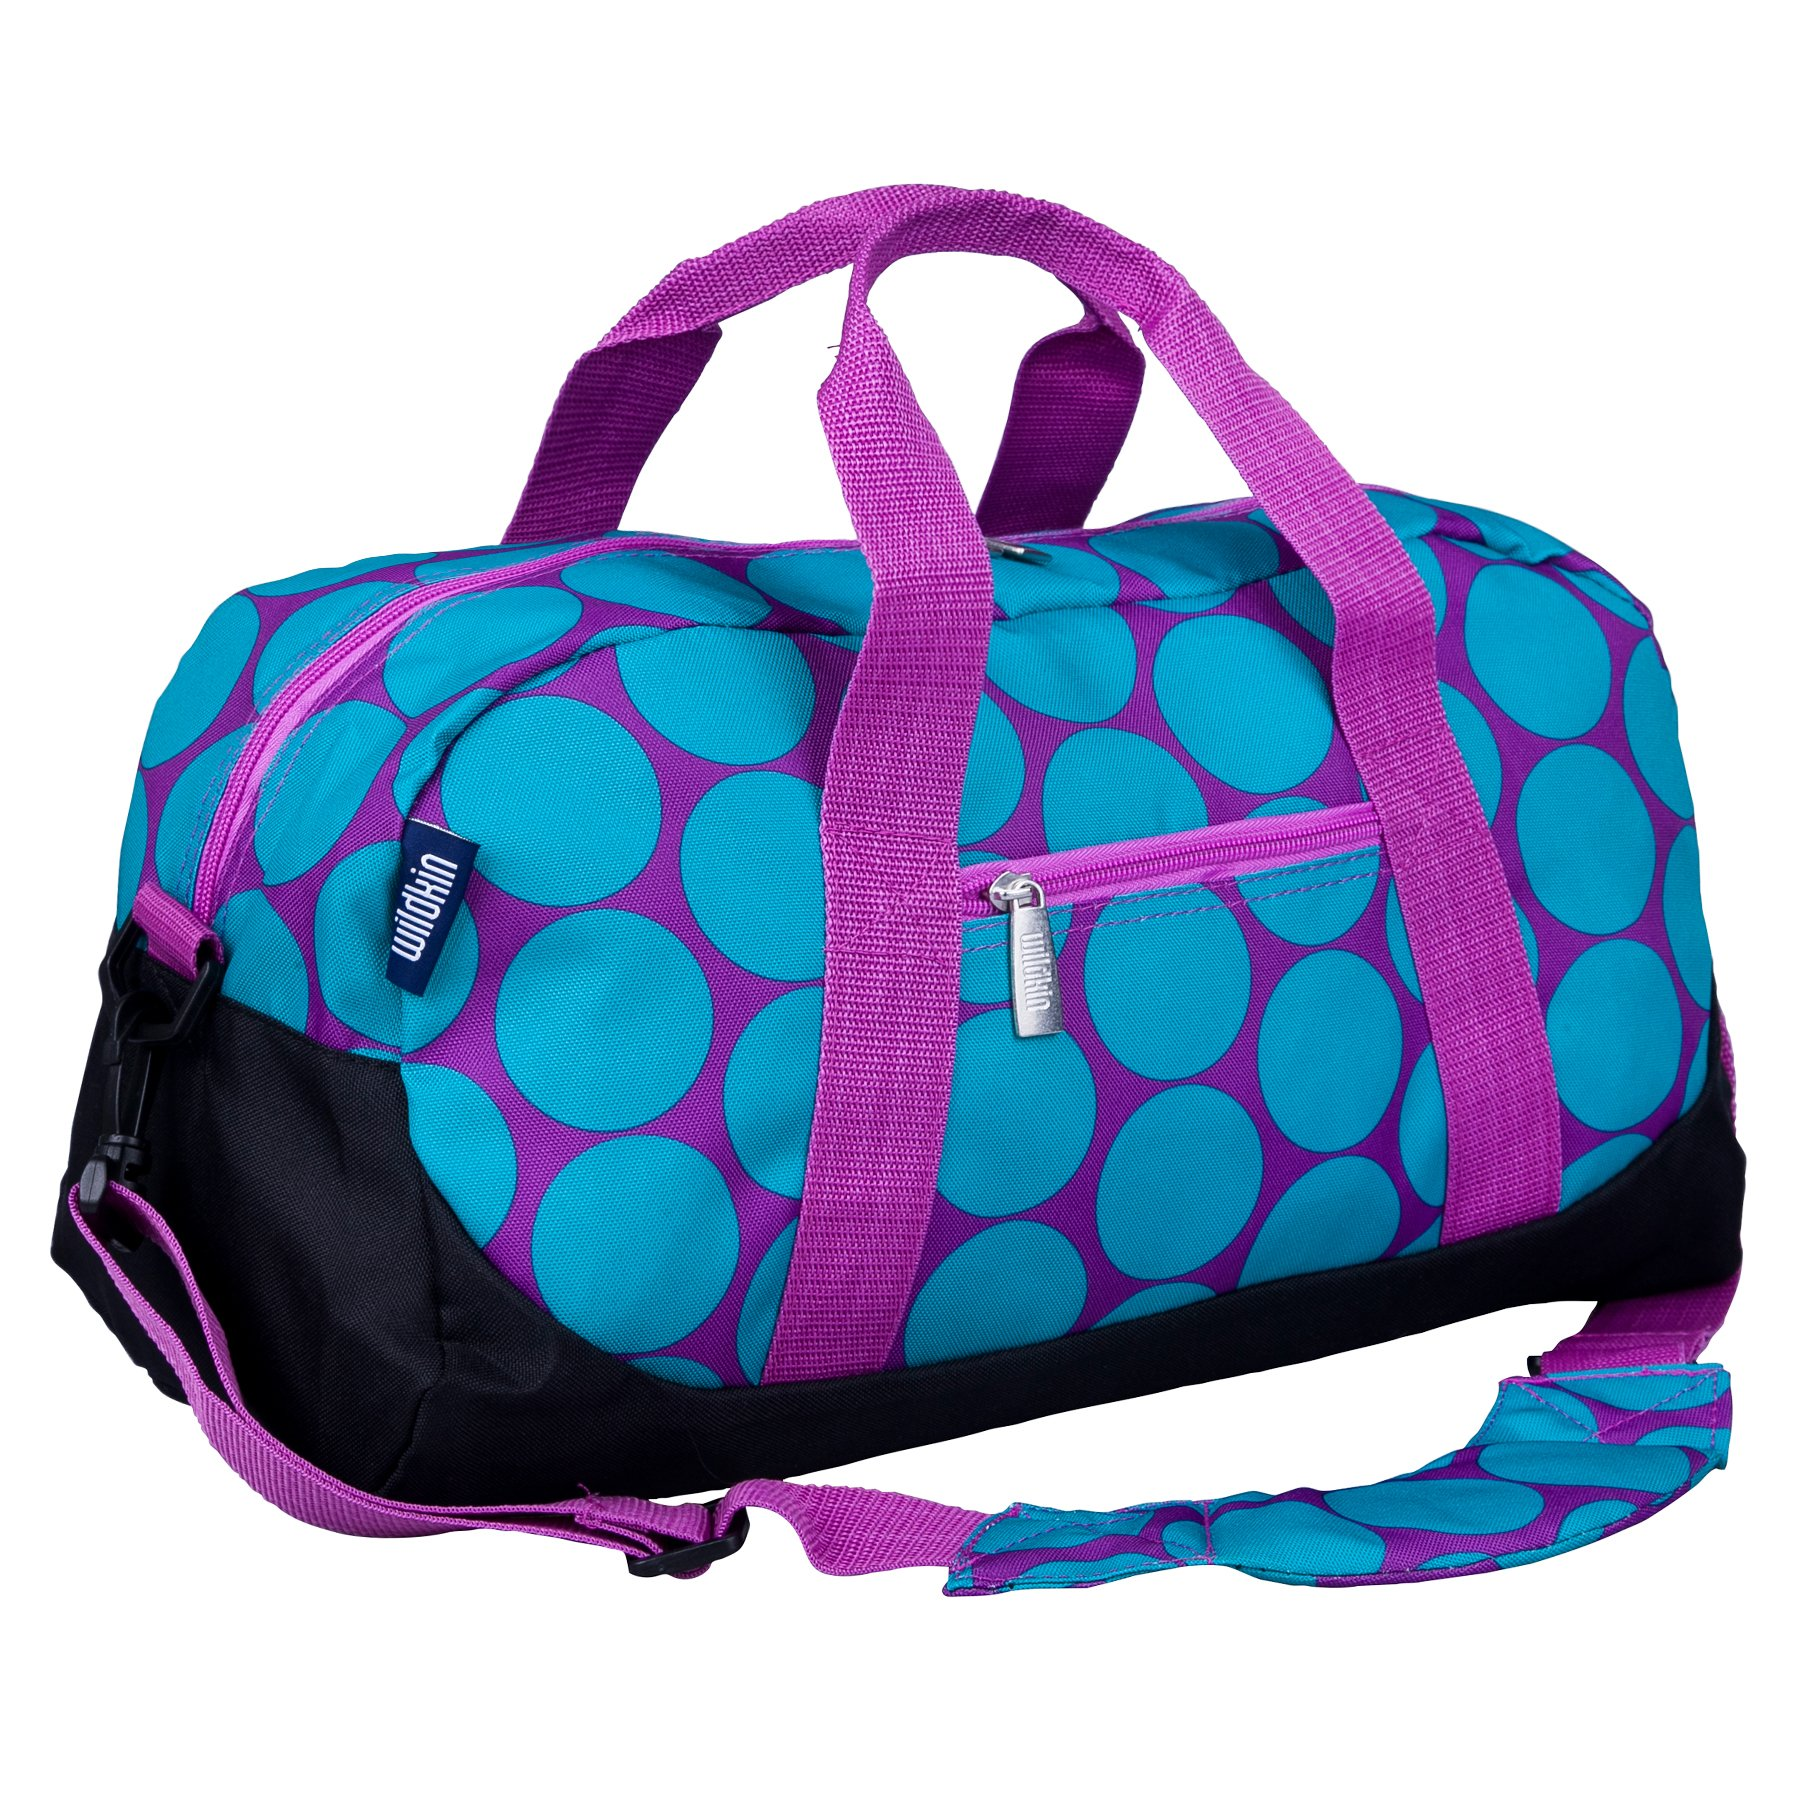 Wildkin Overnighter Duffel Bag, Features Moisture-Resistant Lining and Padded Shoulder Strap, Perfect for Sleepovers, Sports Practice, and Travel – Big Dots Aqua